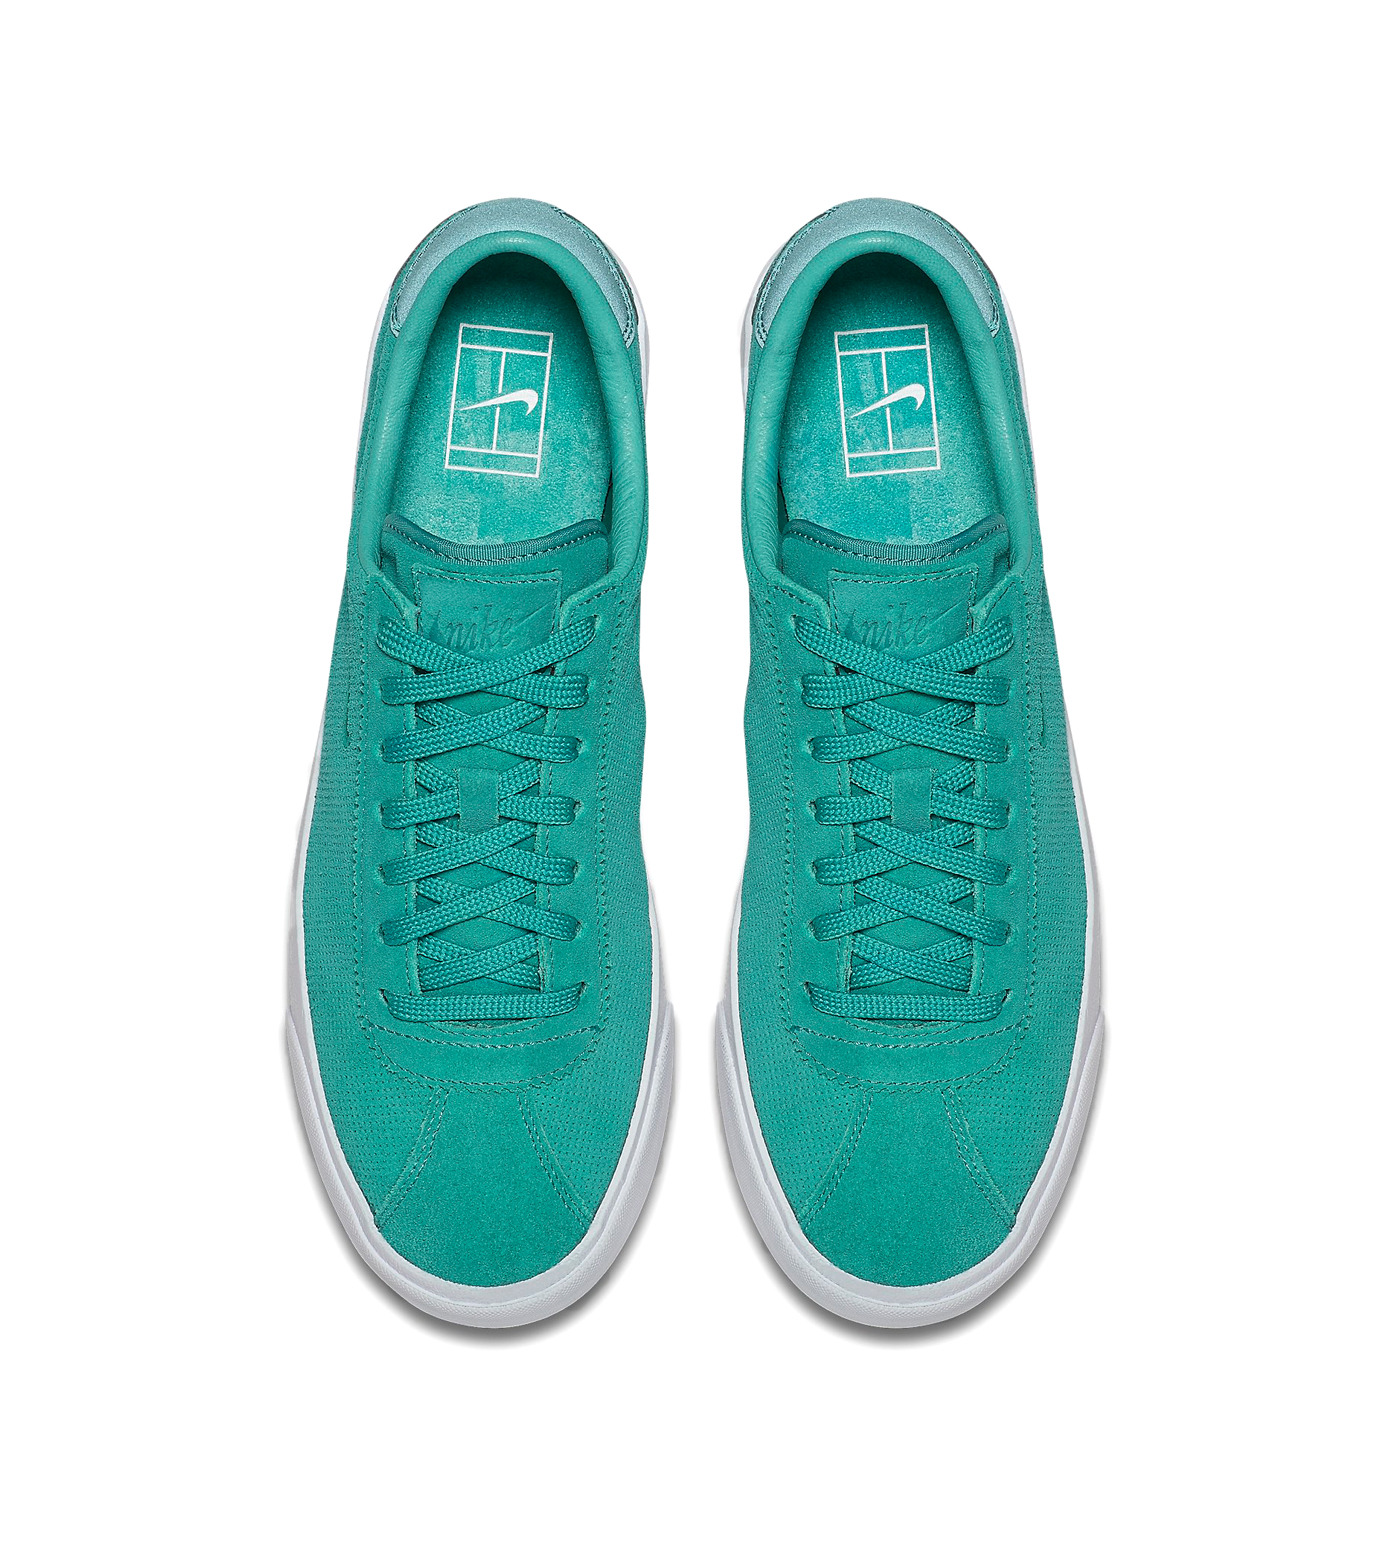 NIKE(ナイキ)のMATCH CLASSIC SUEDE-GREEN(シューズ/shoes)-864718-300-22 拡大詳細画像4